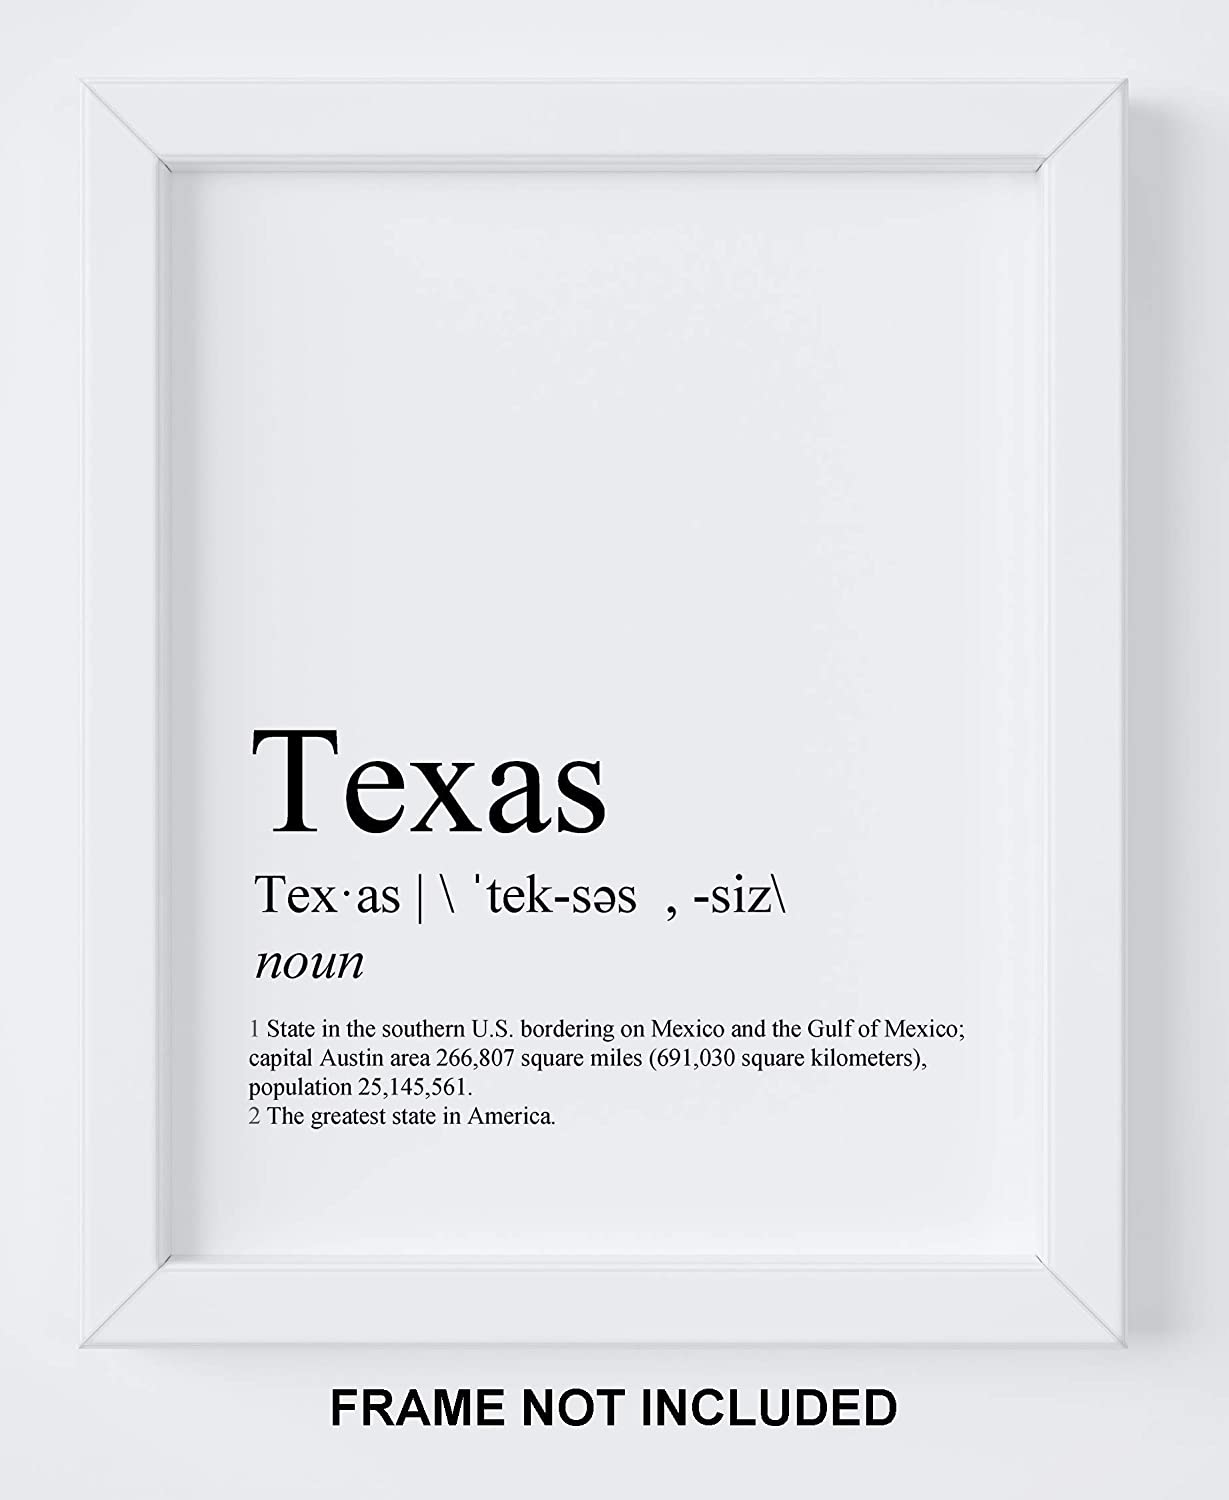 """Texas Wall Art - 8x10"""" UNFRAMED Print - Texas Definition - Black And White Minimal Typography Decor - Funny Texas Gifts For Men And Women"""